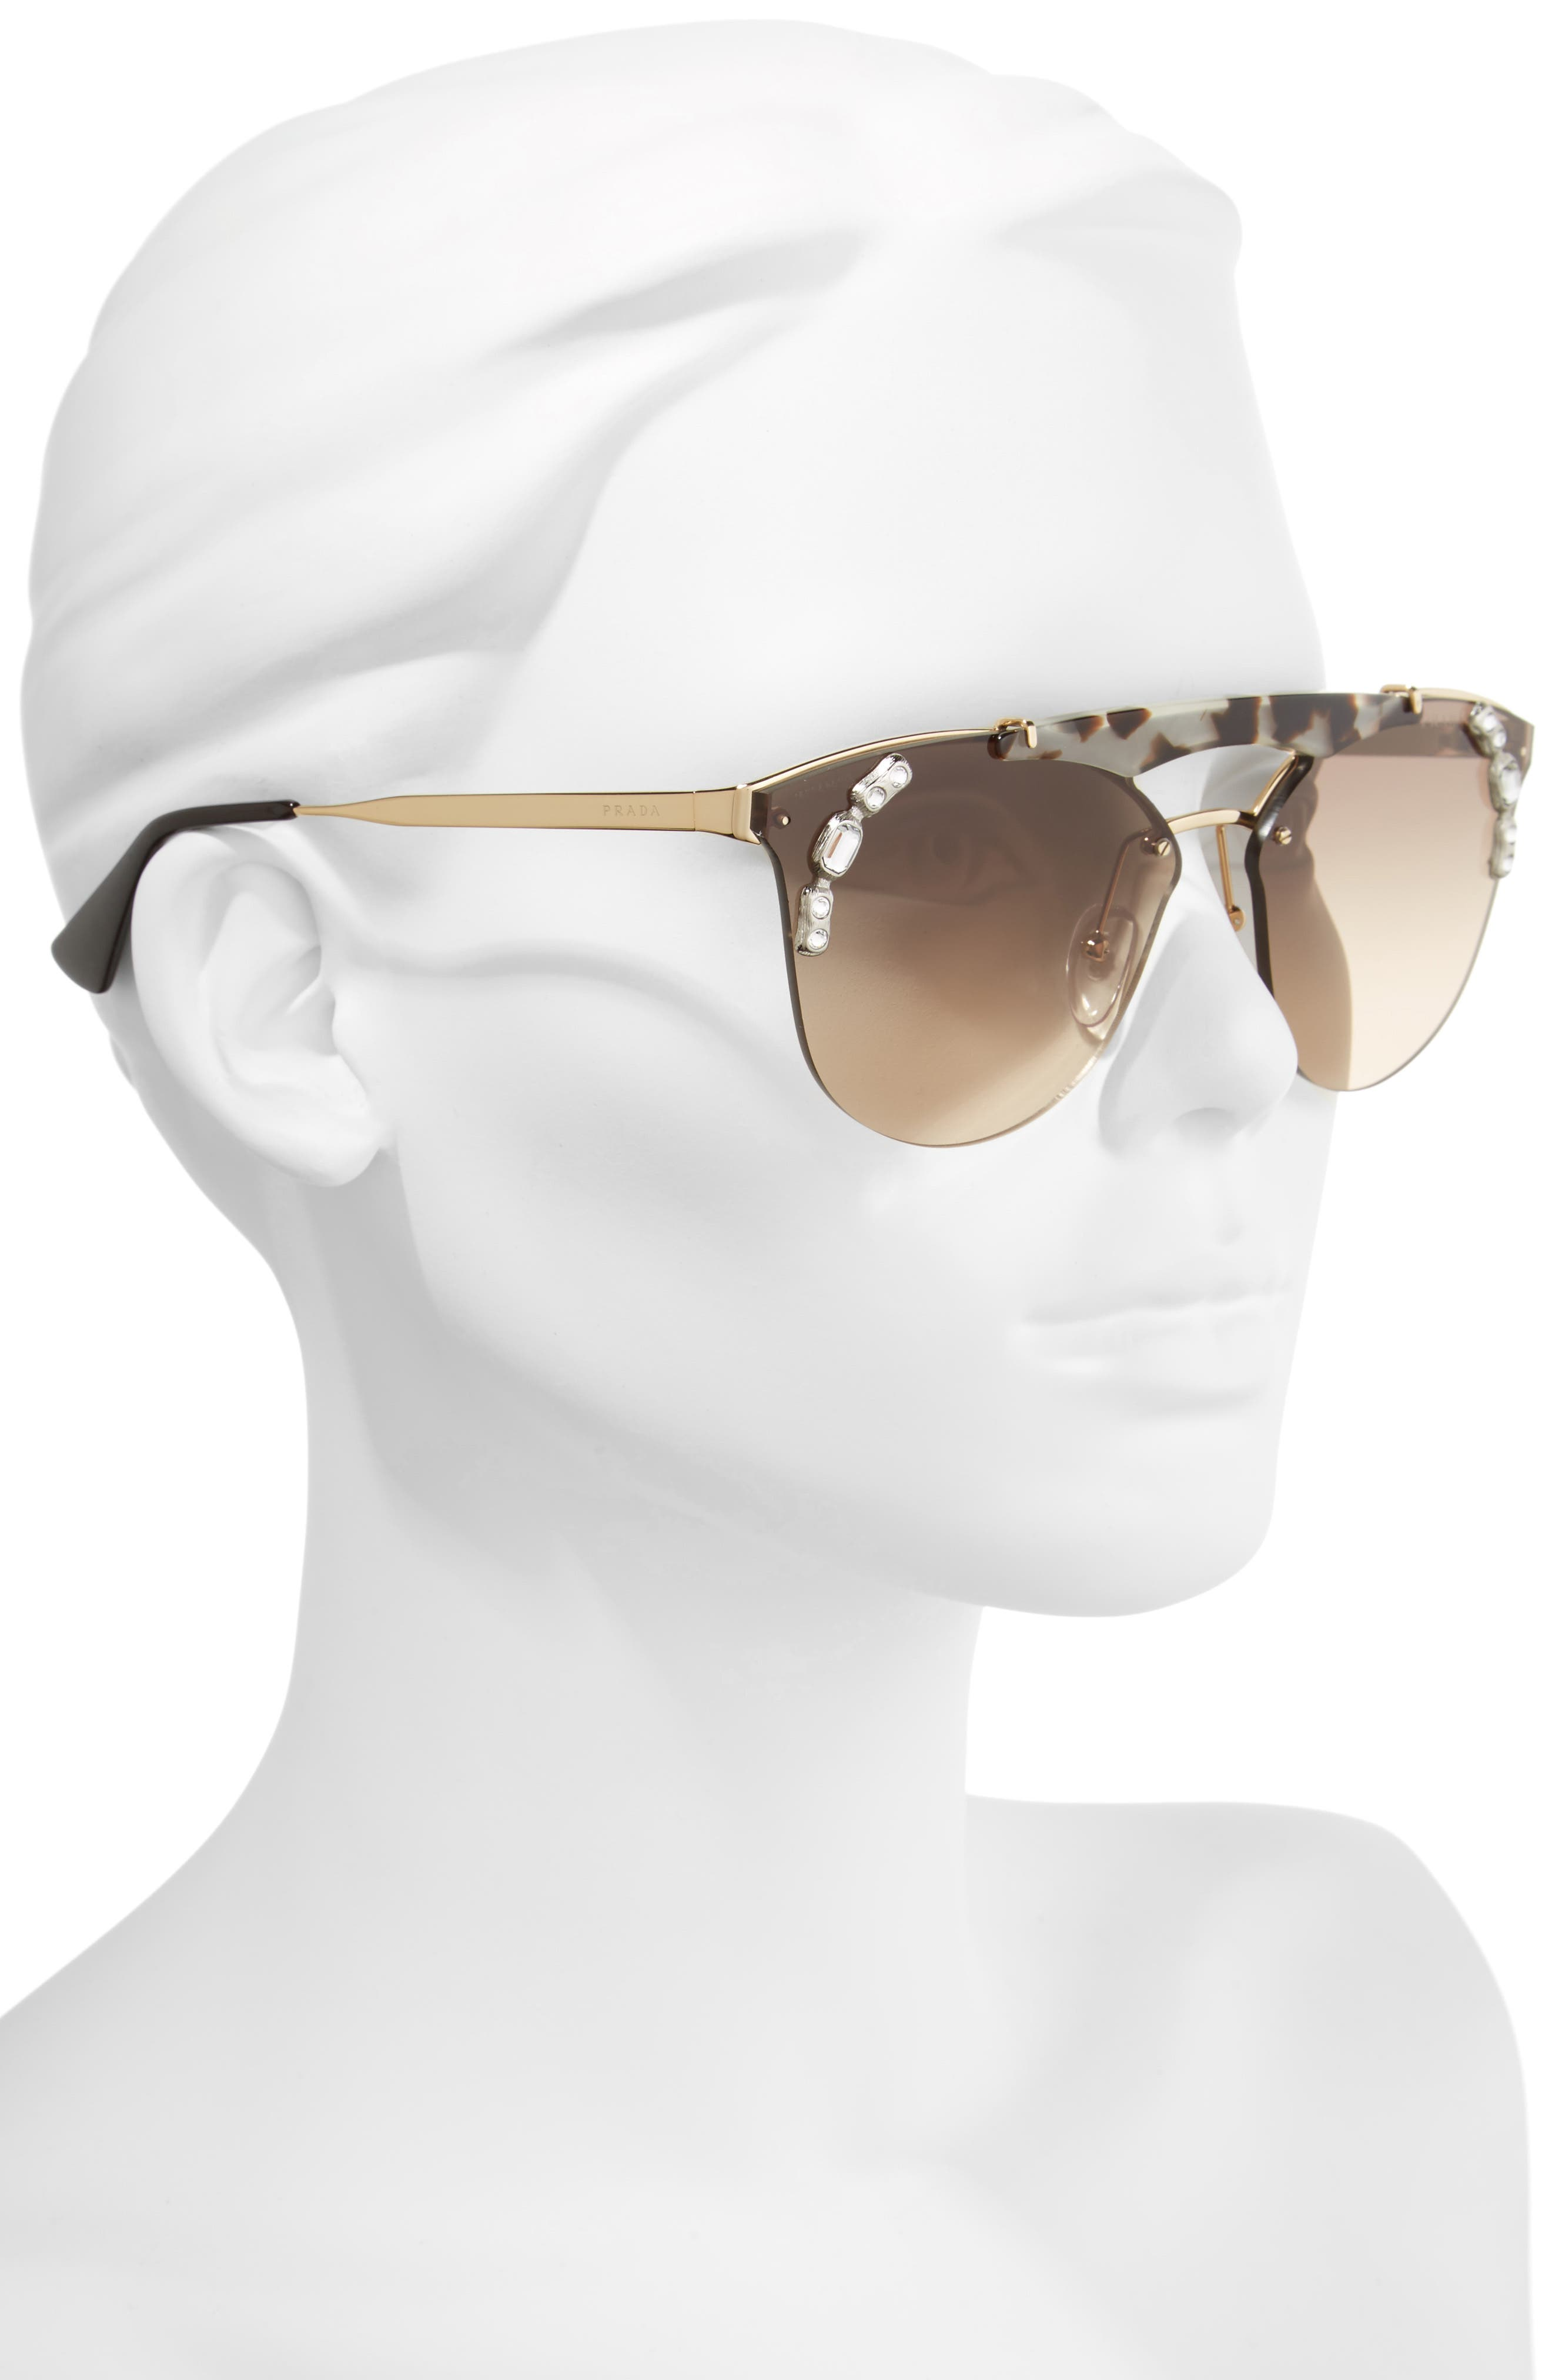 53mm Embellished Rimless Sunglasses,                             Alternate thumbnail 2, color,                             Gold/ Brown